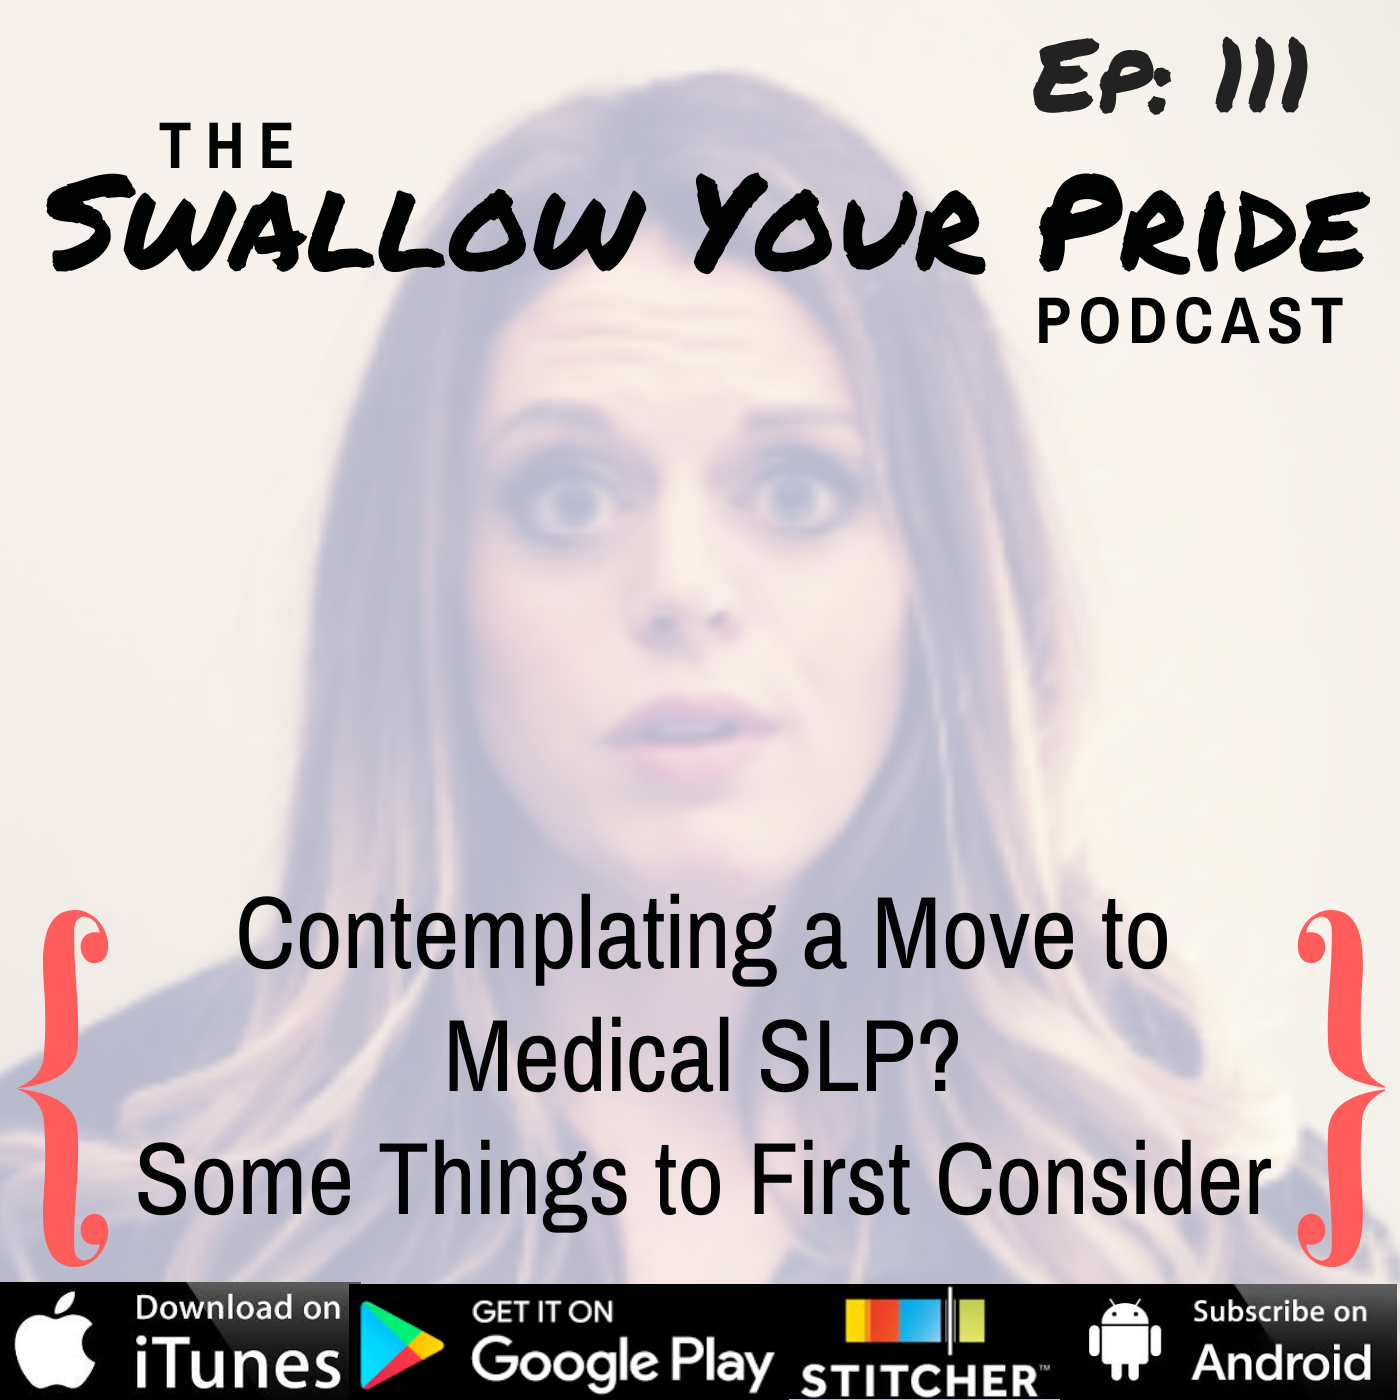 111 – Contemplating a Move to Medical SLP?  Some Things to First Consider